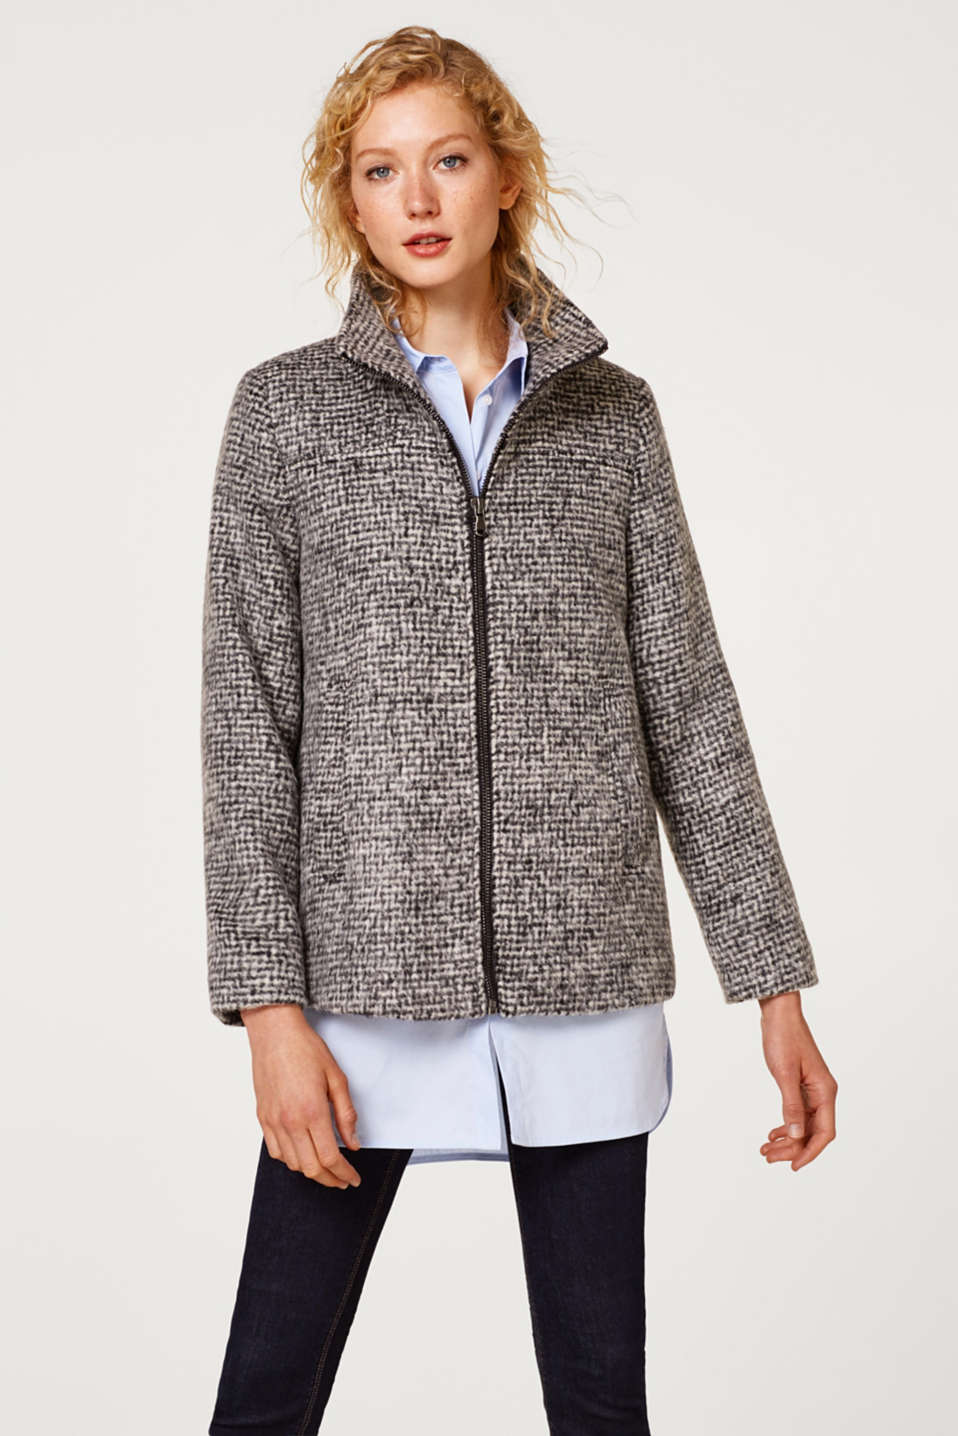 Esprit - Made of blended wool: jacket with a brushed check pattern